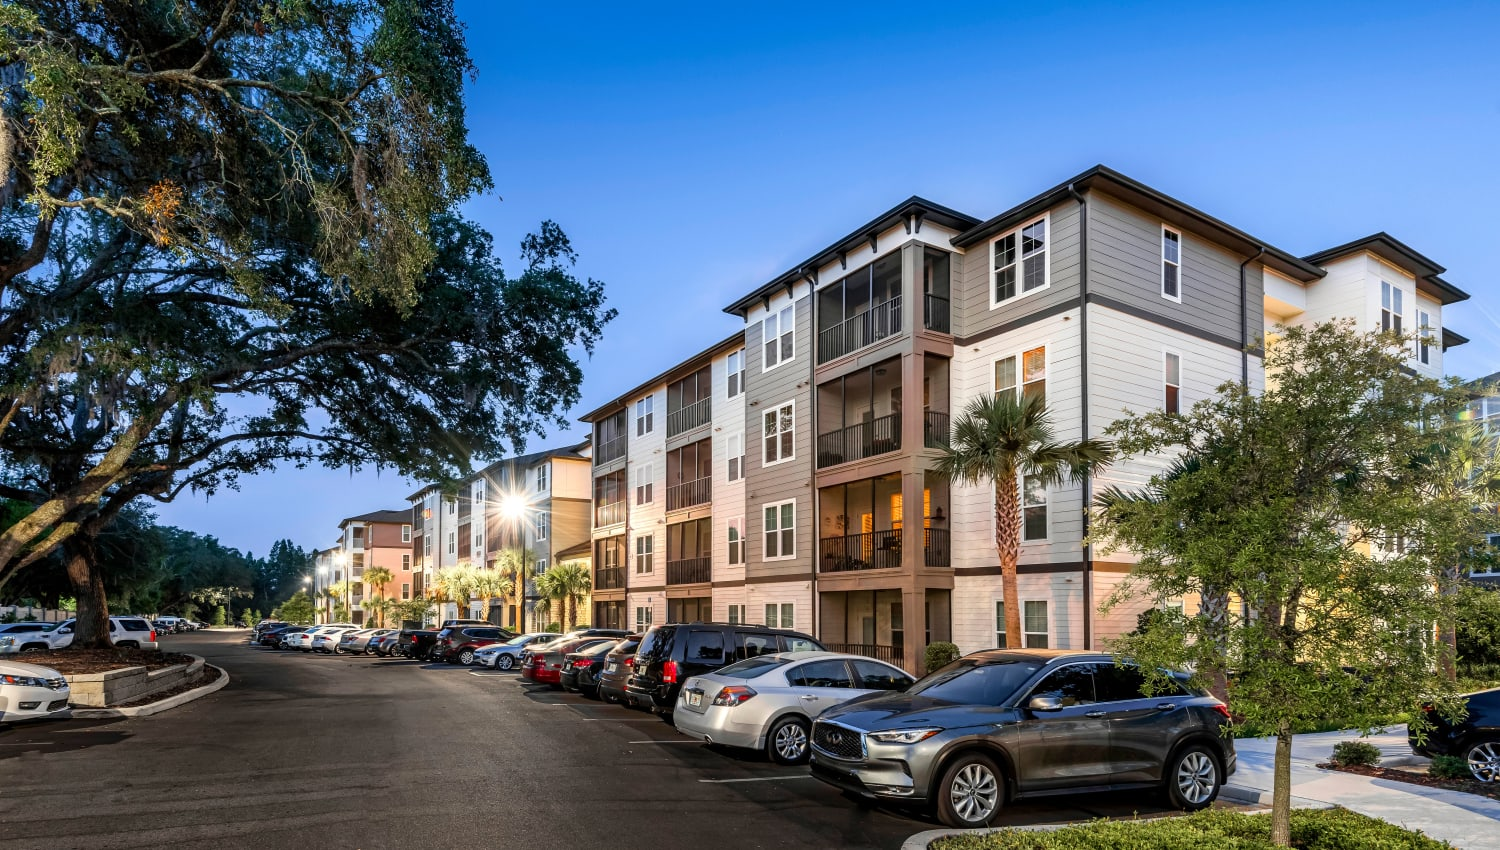 Parking lot and resident buildings in the evening at Canopy at Citrus Park in Tampa, Florida